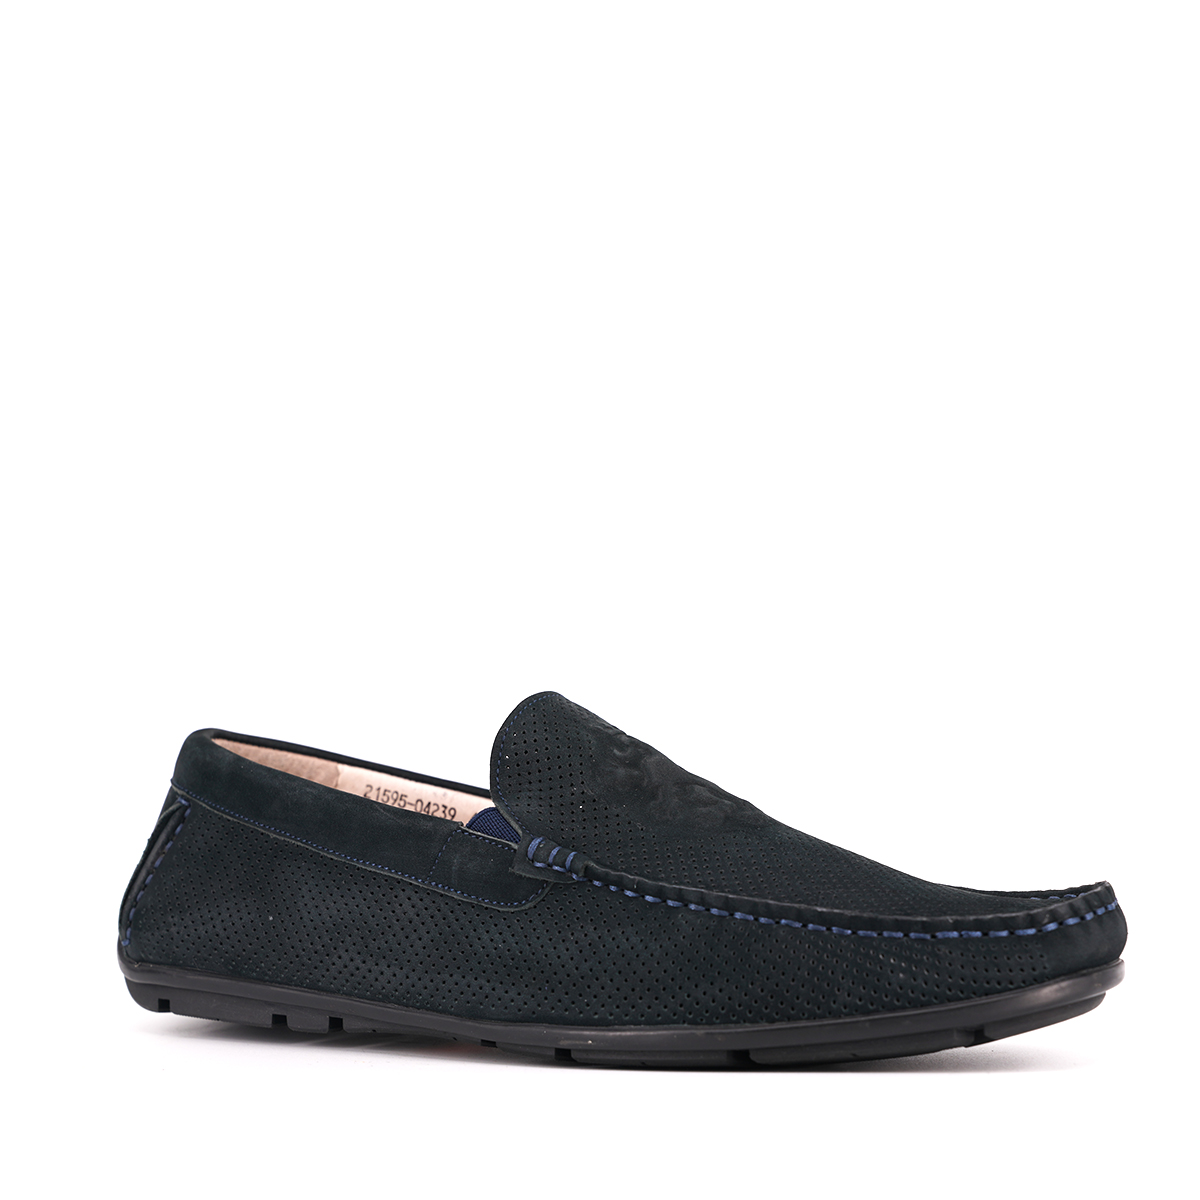 Nubuck real leather mocassin casual shoes for men